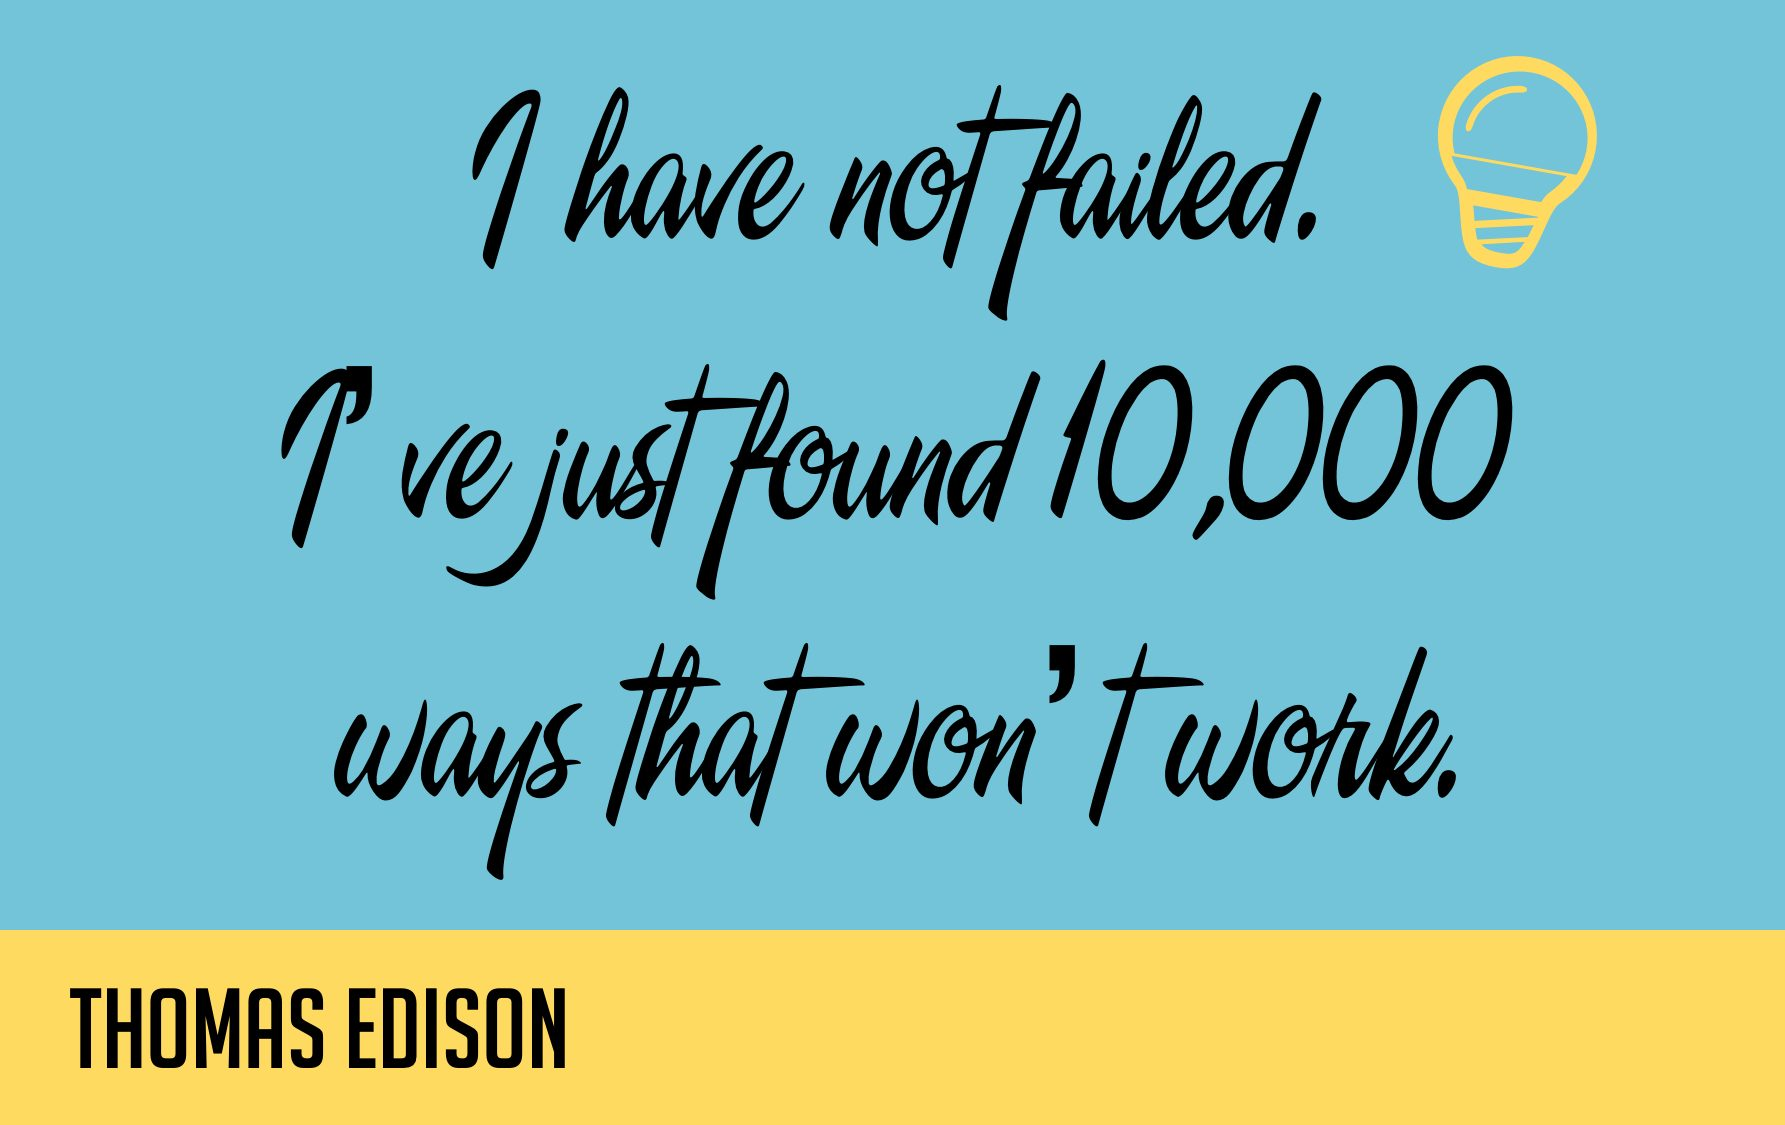 I have not failed. I've just found 10,000 ways that won't work. - Thomas Edison